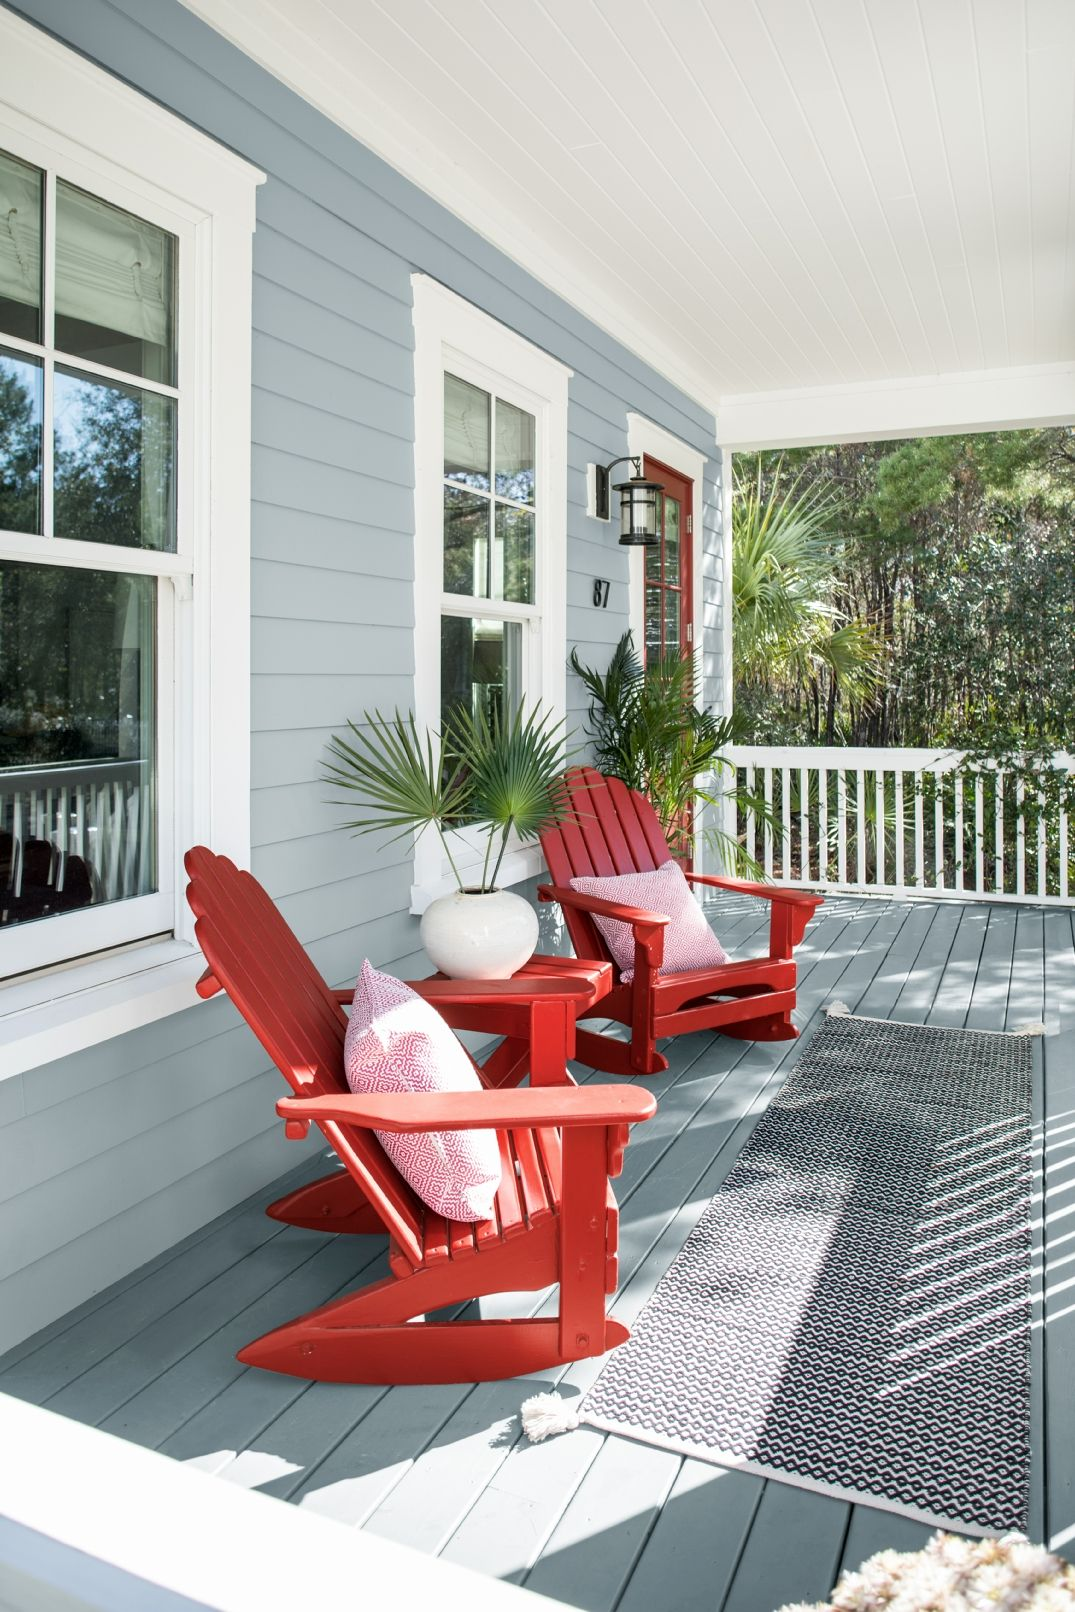 A Comfortable Coastal Porch Featuring Benjamin Moore Nimbus Gray 2131 50 And Caliente Af 290 The Perfect Paint Colors For Look That Is Fun